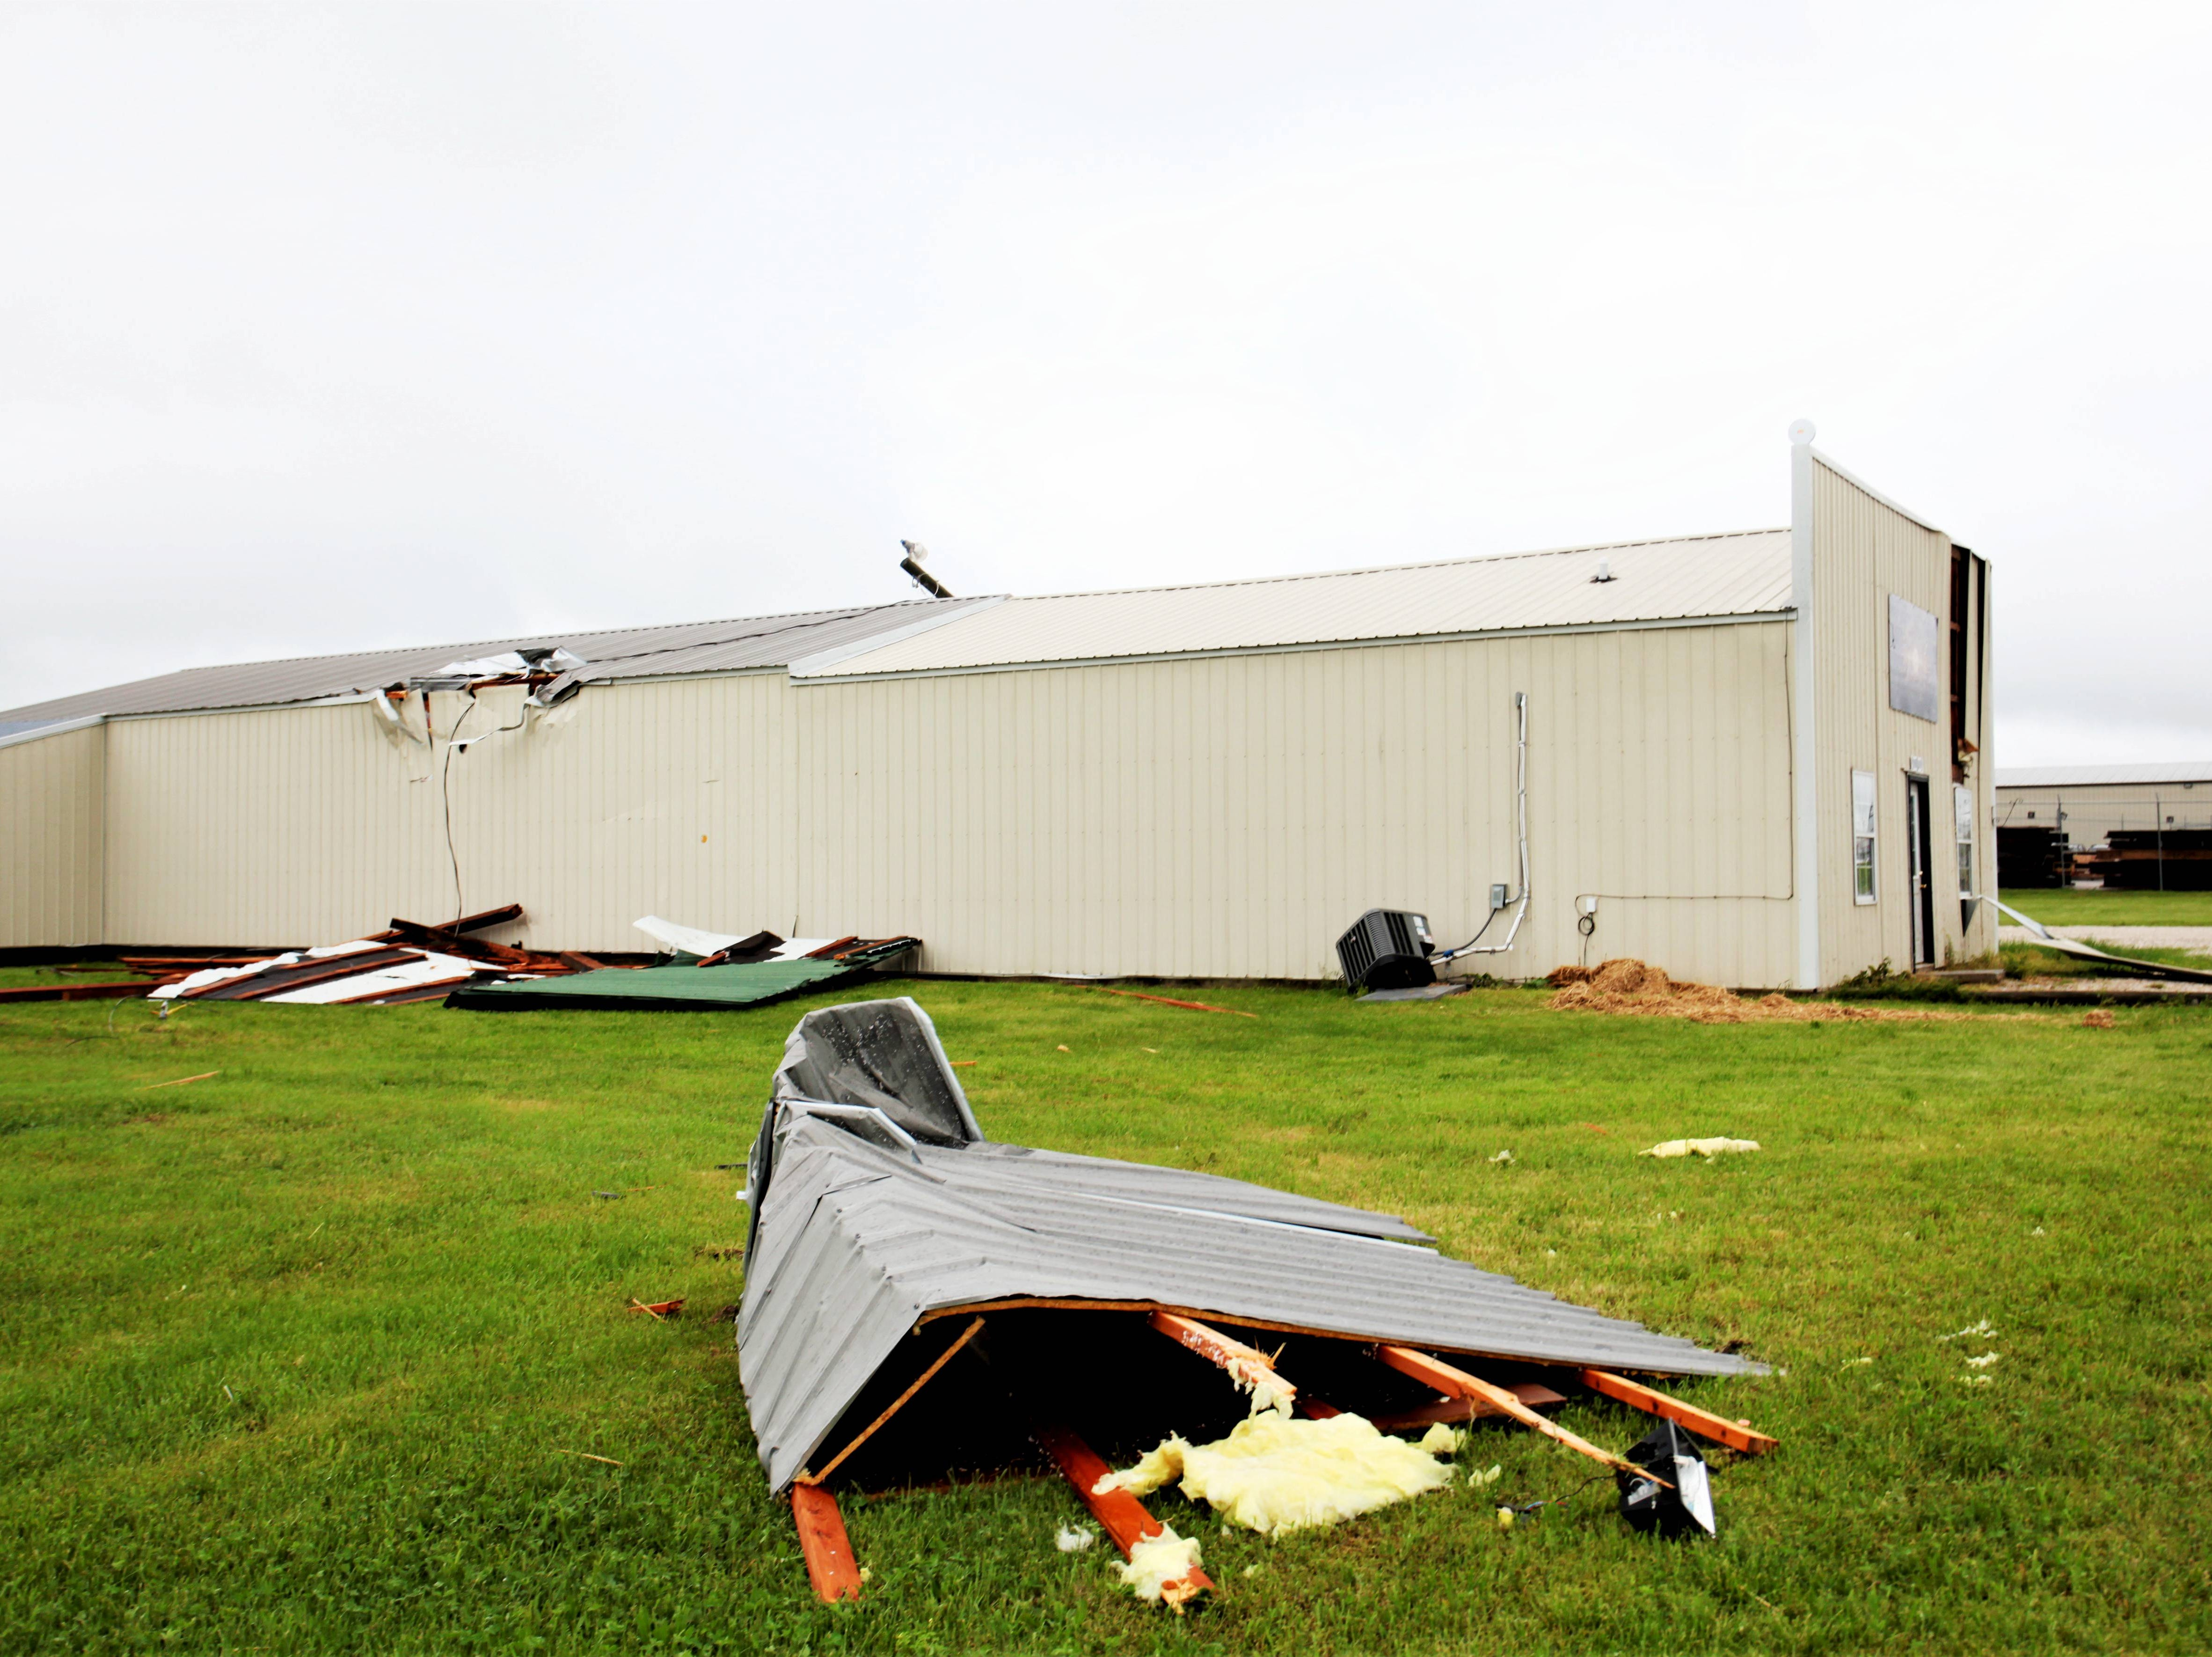 Scenes along Endeavor Drive of storm damage Wednesday, May 1, 2019.